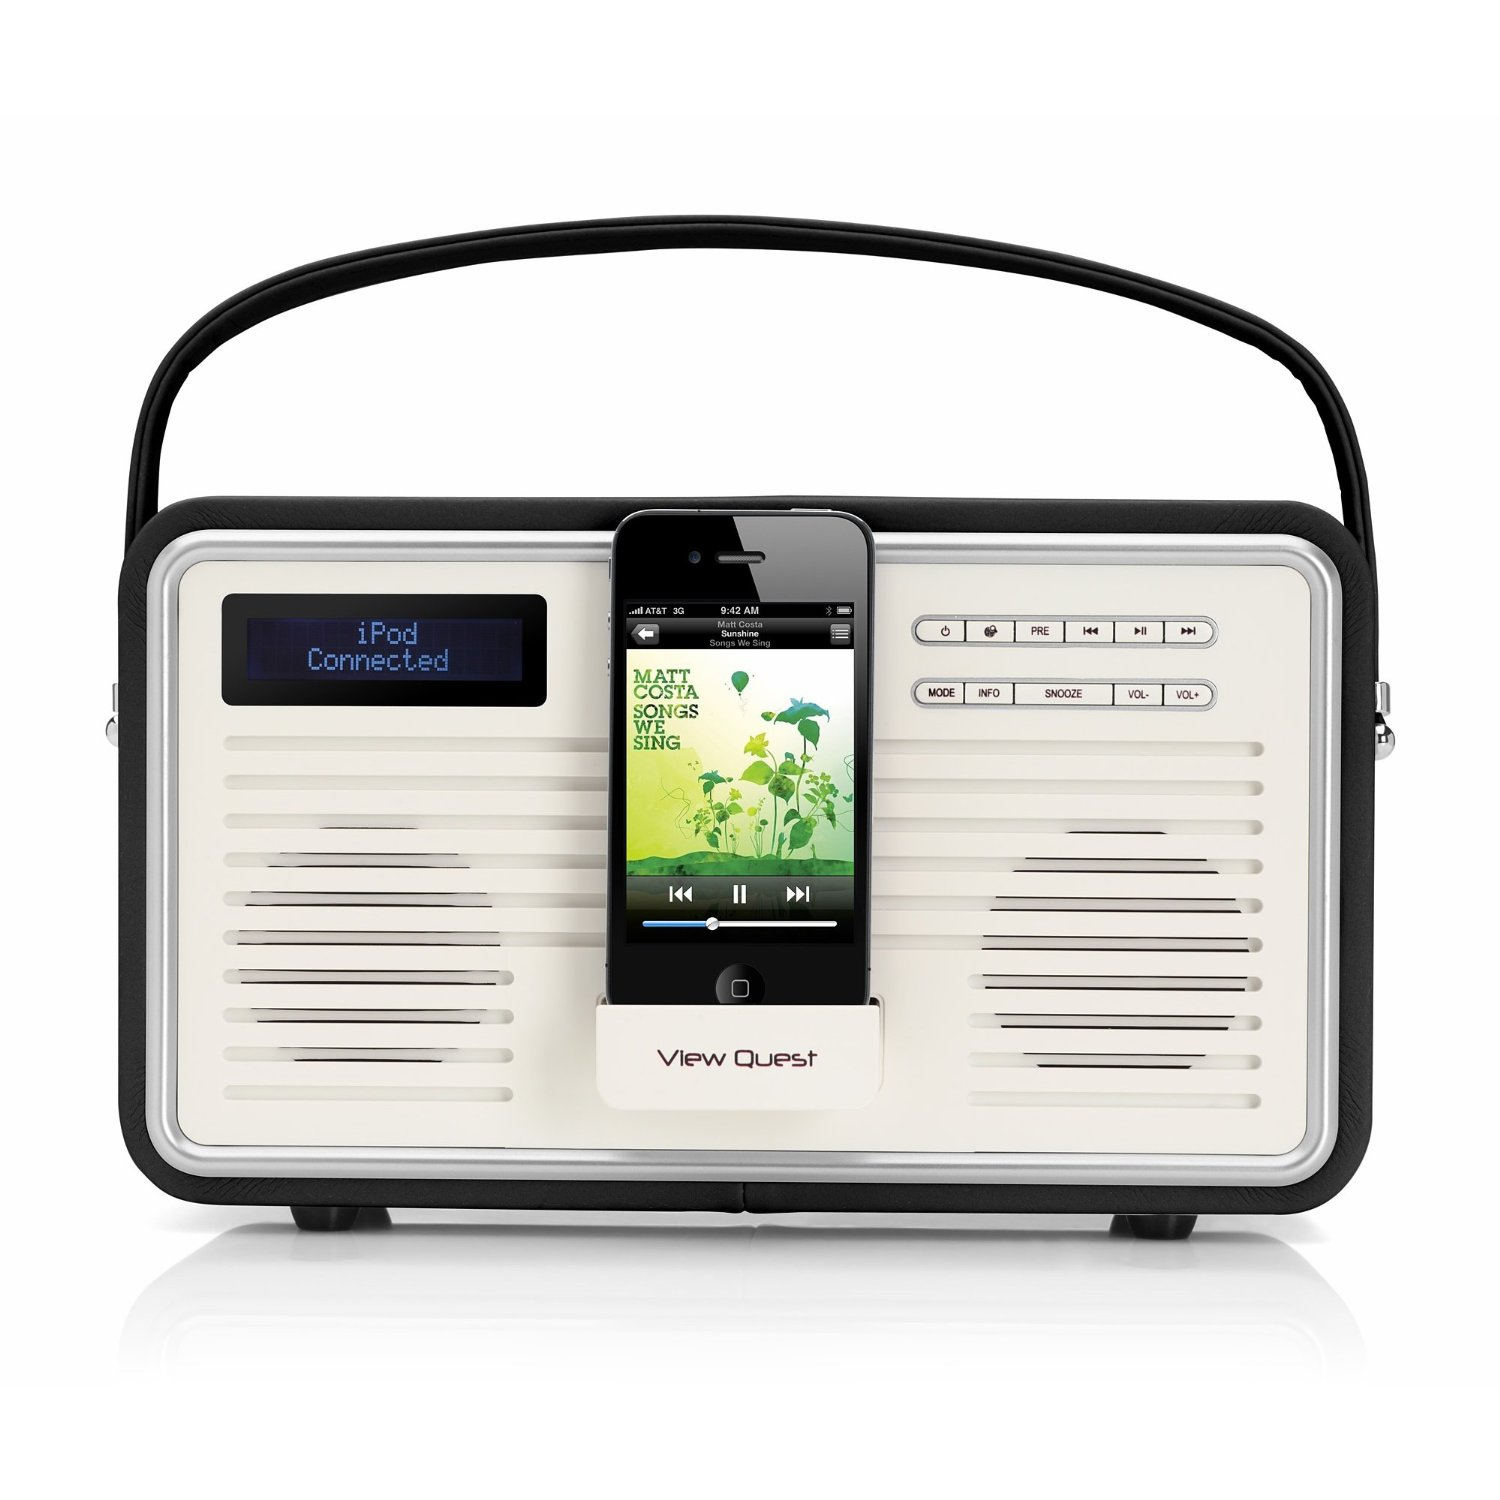 view quest retro portable dab fm radio with ipod iphone docking station black ebay. Black Bedroom Furniture Sets. Home Design Ideas